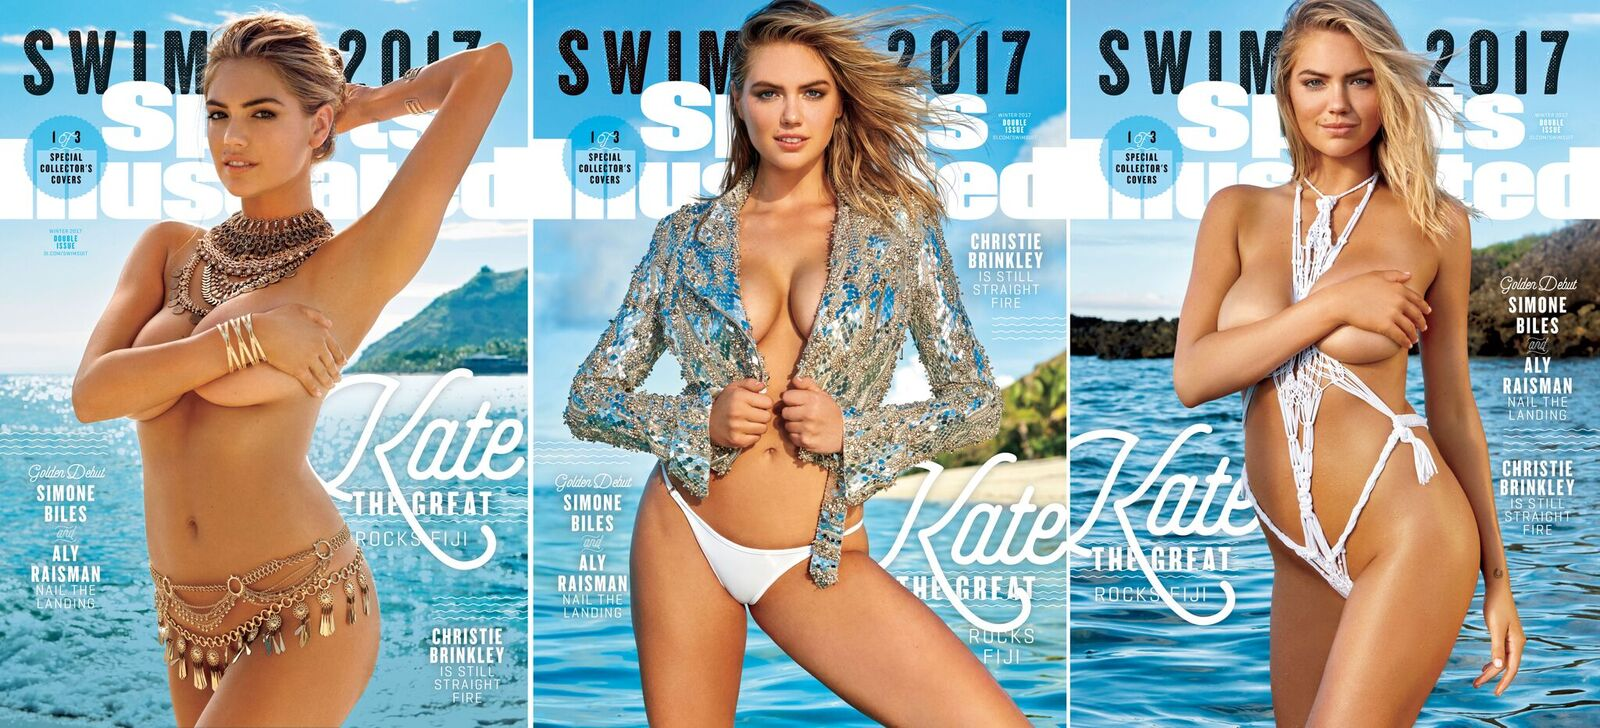 Swimsuit: 2017 Issue: Kate Upton is our SI Swimsuit 2017 cover girl.